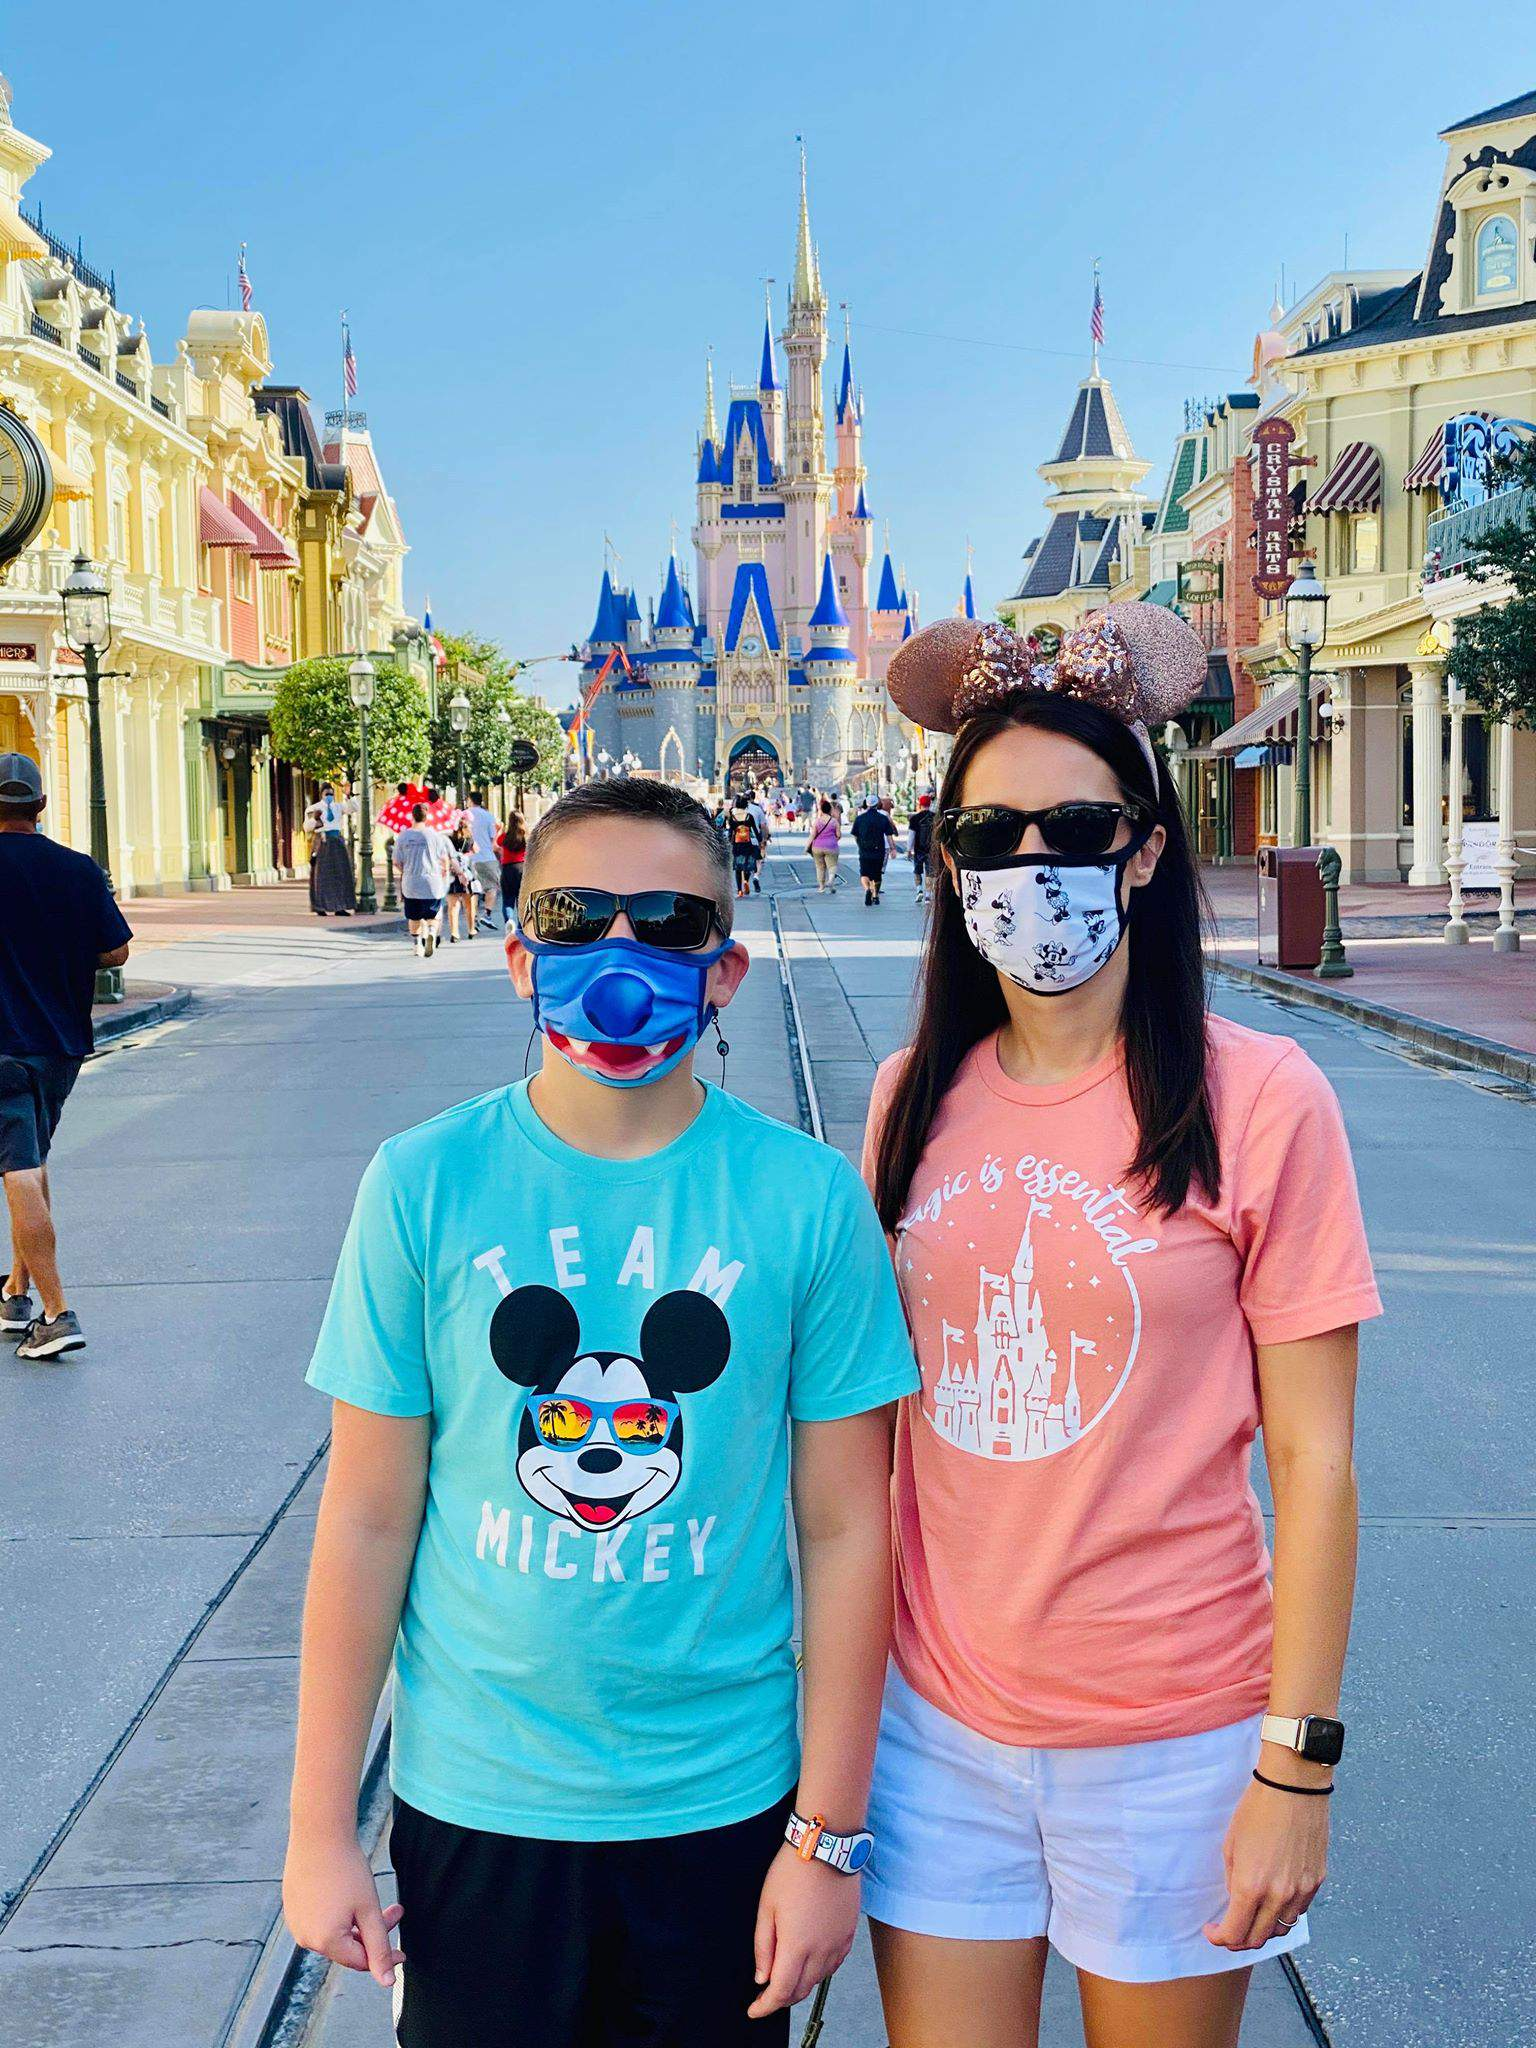 The Smith Family at Disney on July 9, 2020. (Image credit: Dewayne Smith)